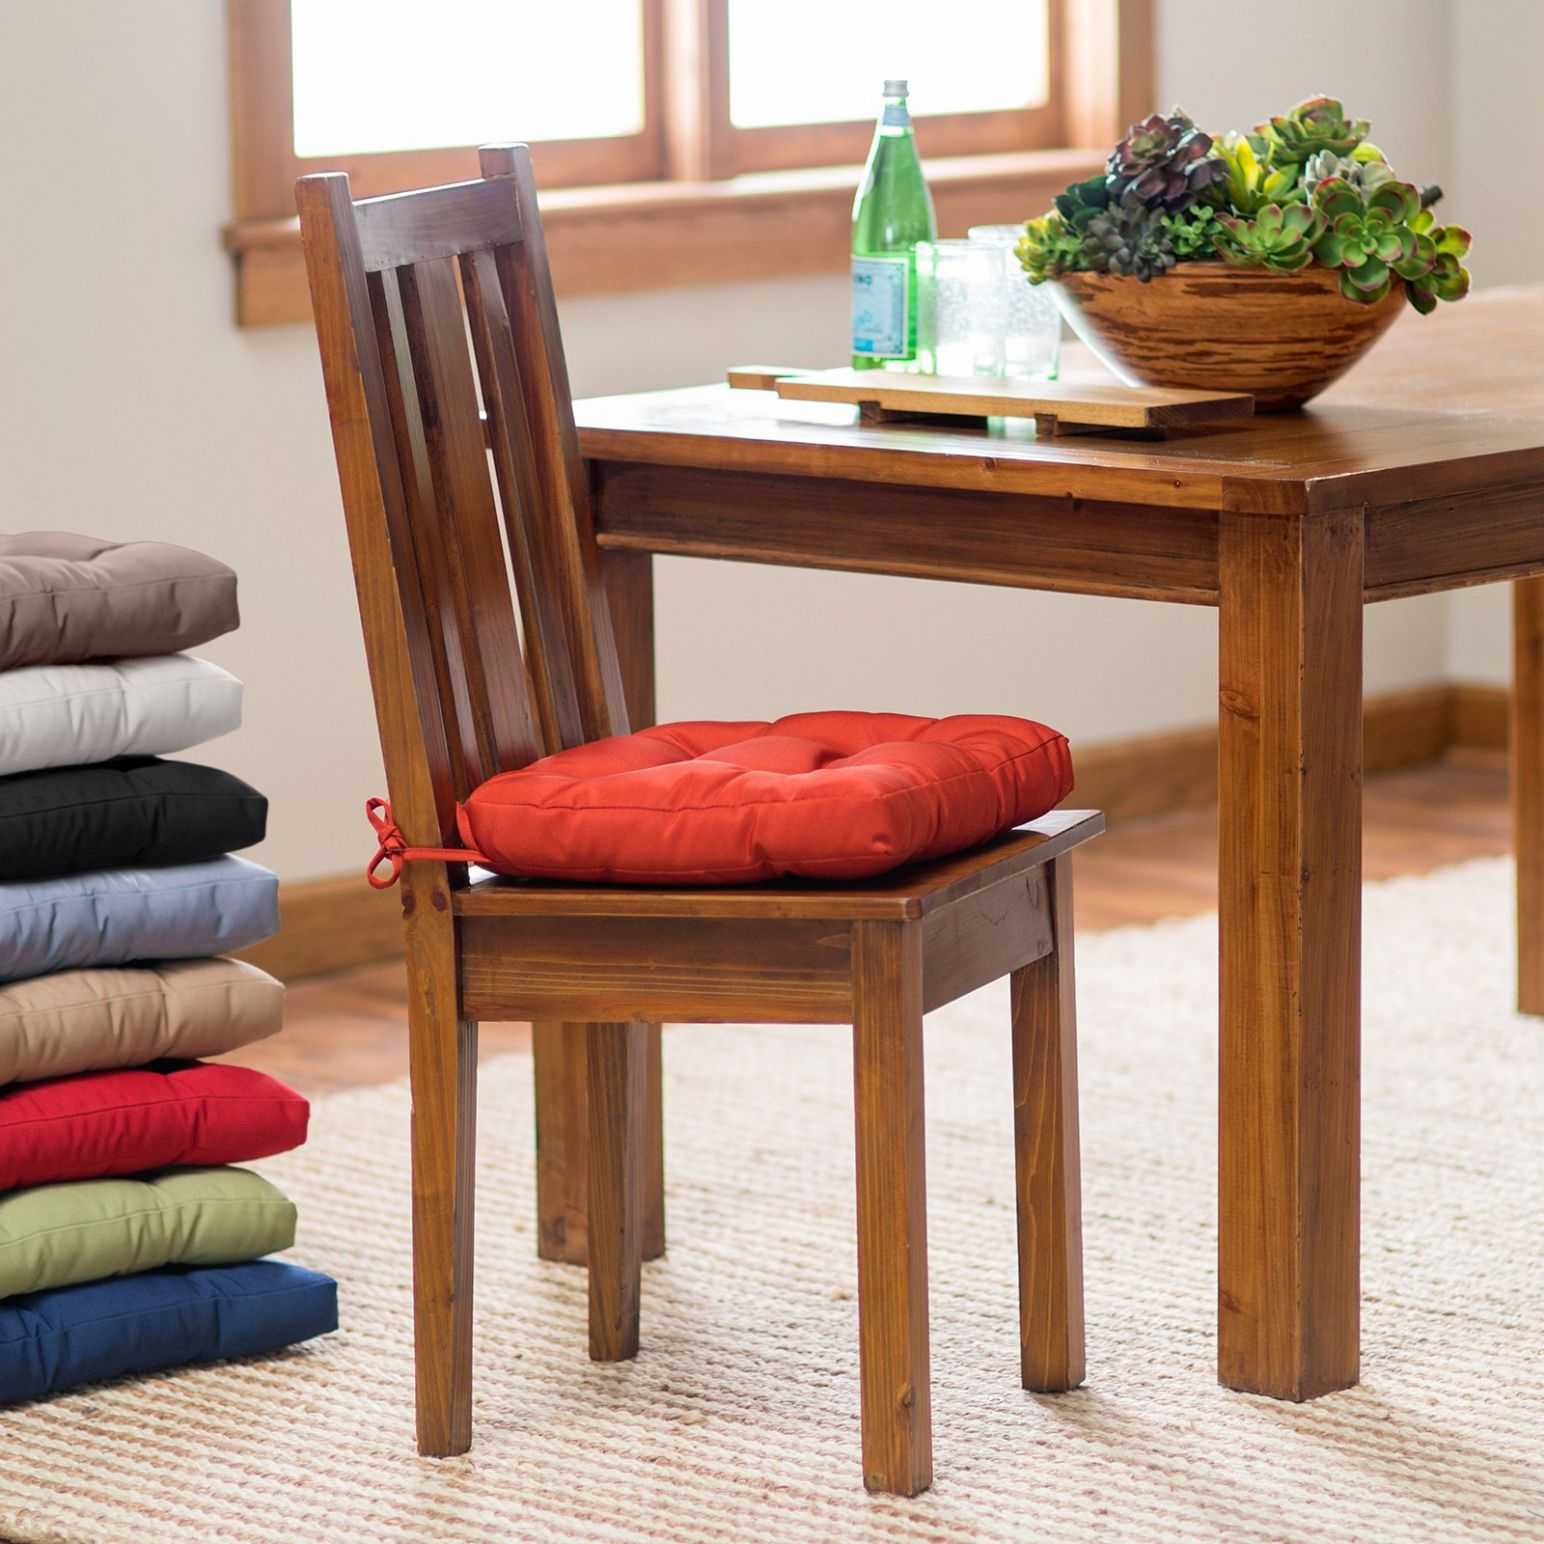 100 kitchen chair pads cushions diy kitchen countertop ideas check more at http